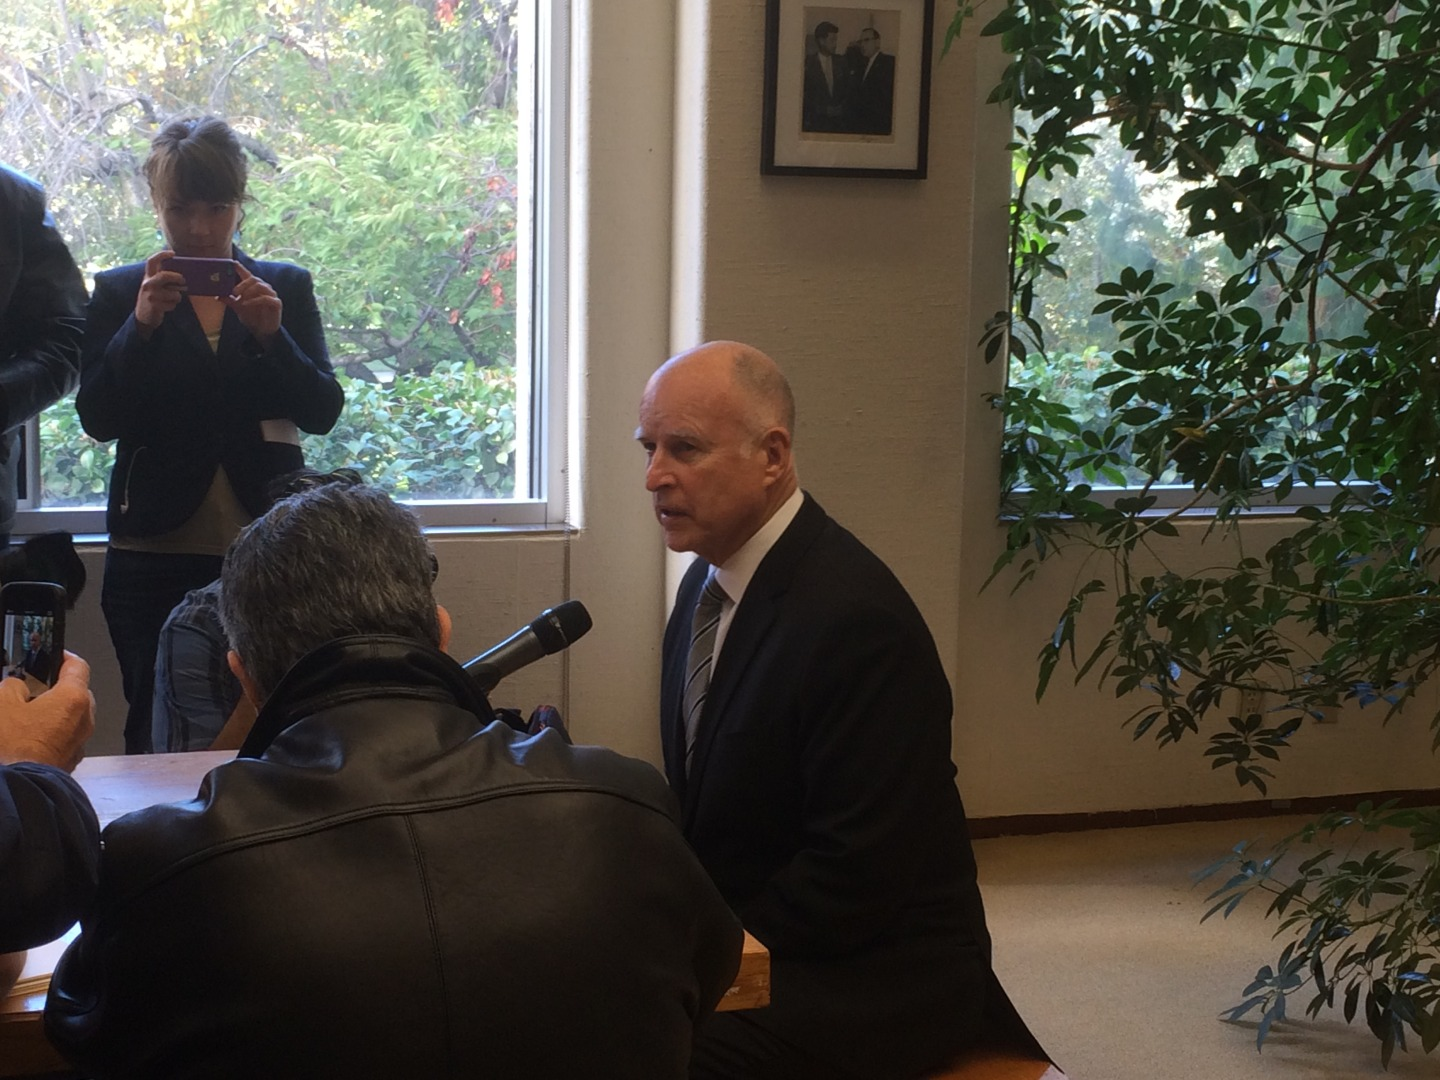 The Day After: Brown Looks Ahead While Kashkari Recaps Race